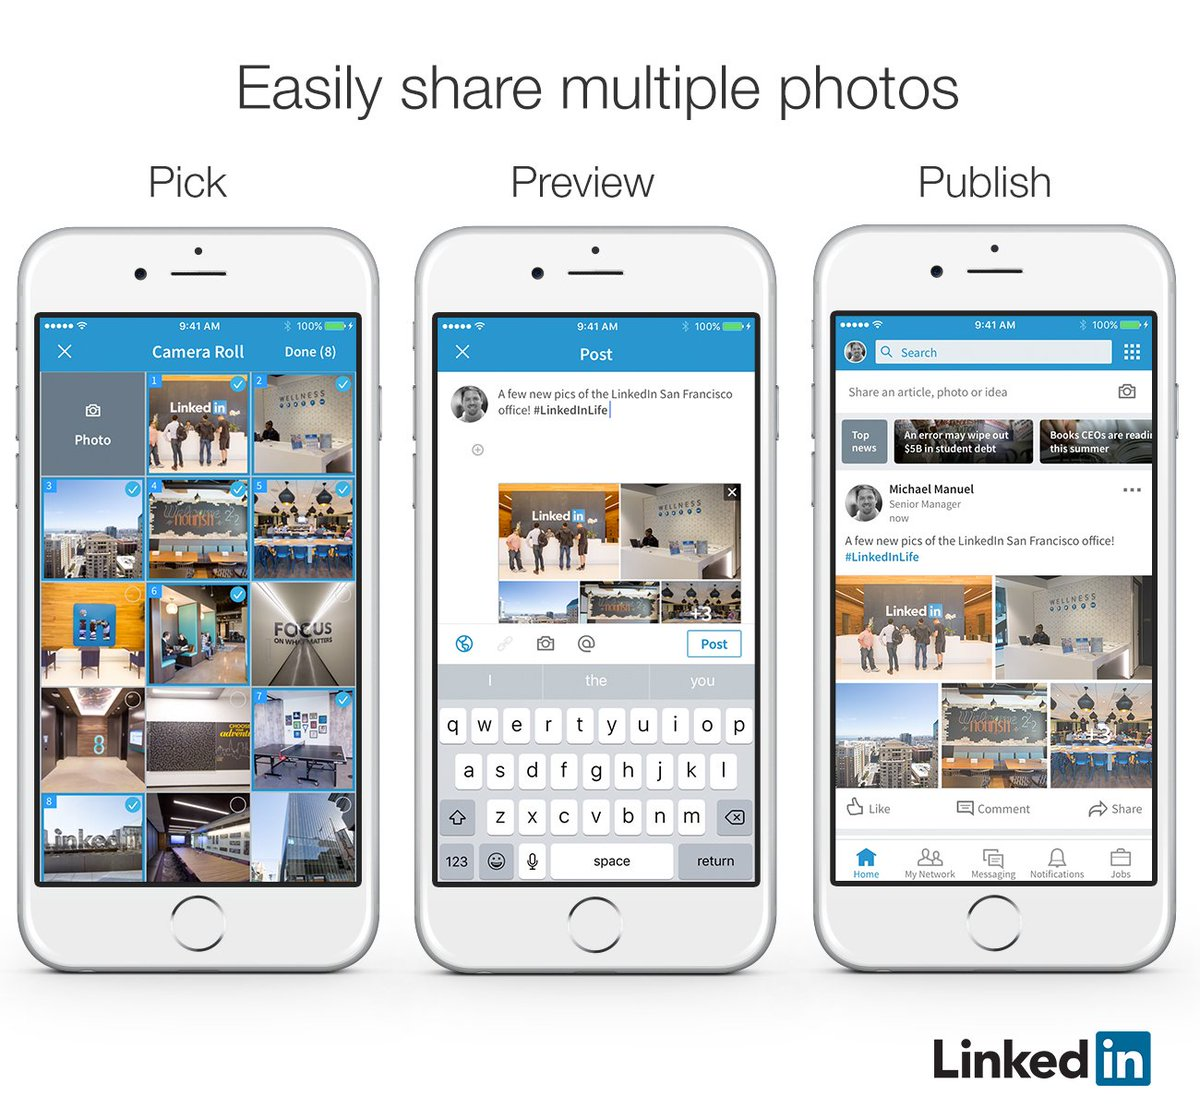 BREAKING: You can now post up to nine photos in your #LinkedIn posts -  https:// blog.linkedin.com/2017/july/25/t uesday-tip-make-your-posts-stand-out-by-adding-multiple-photos &nbsp; … !  #countemnine #SoSoShow<br>http://pic.twitter.com/F0yzfAPFpW